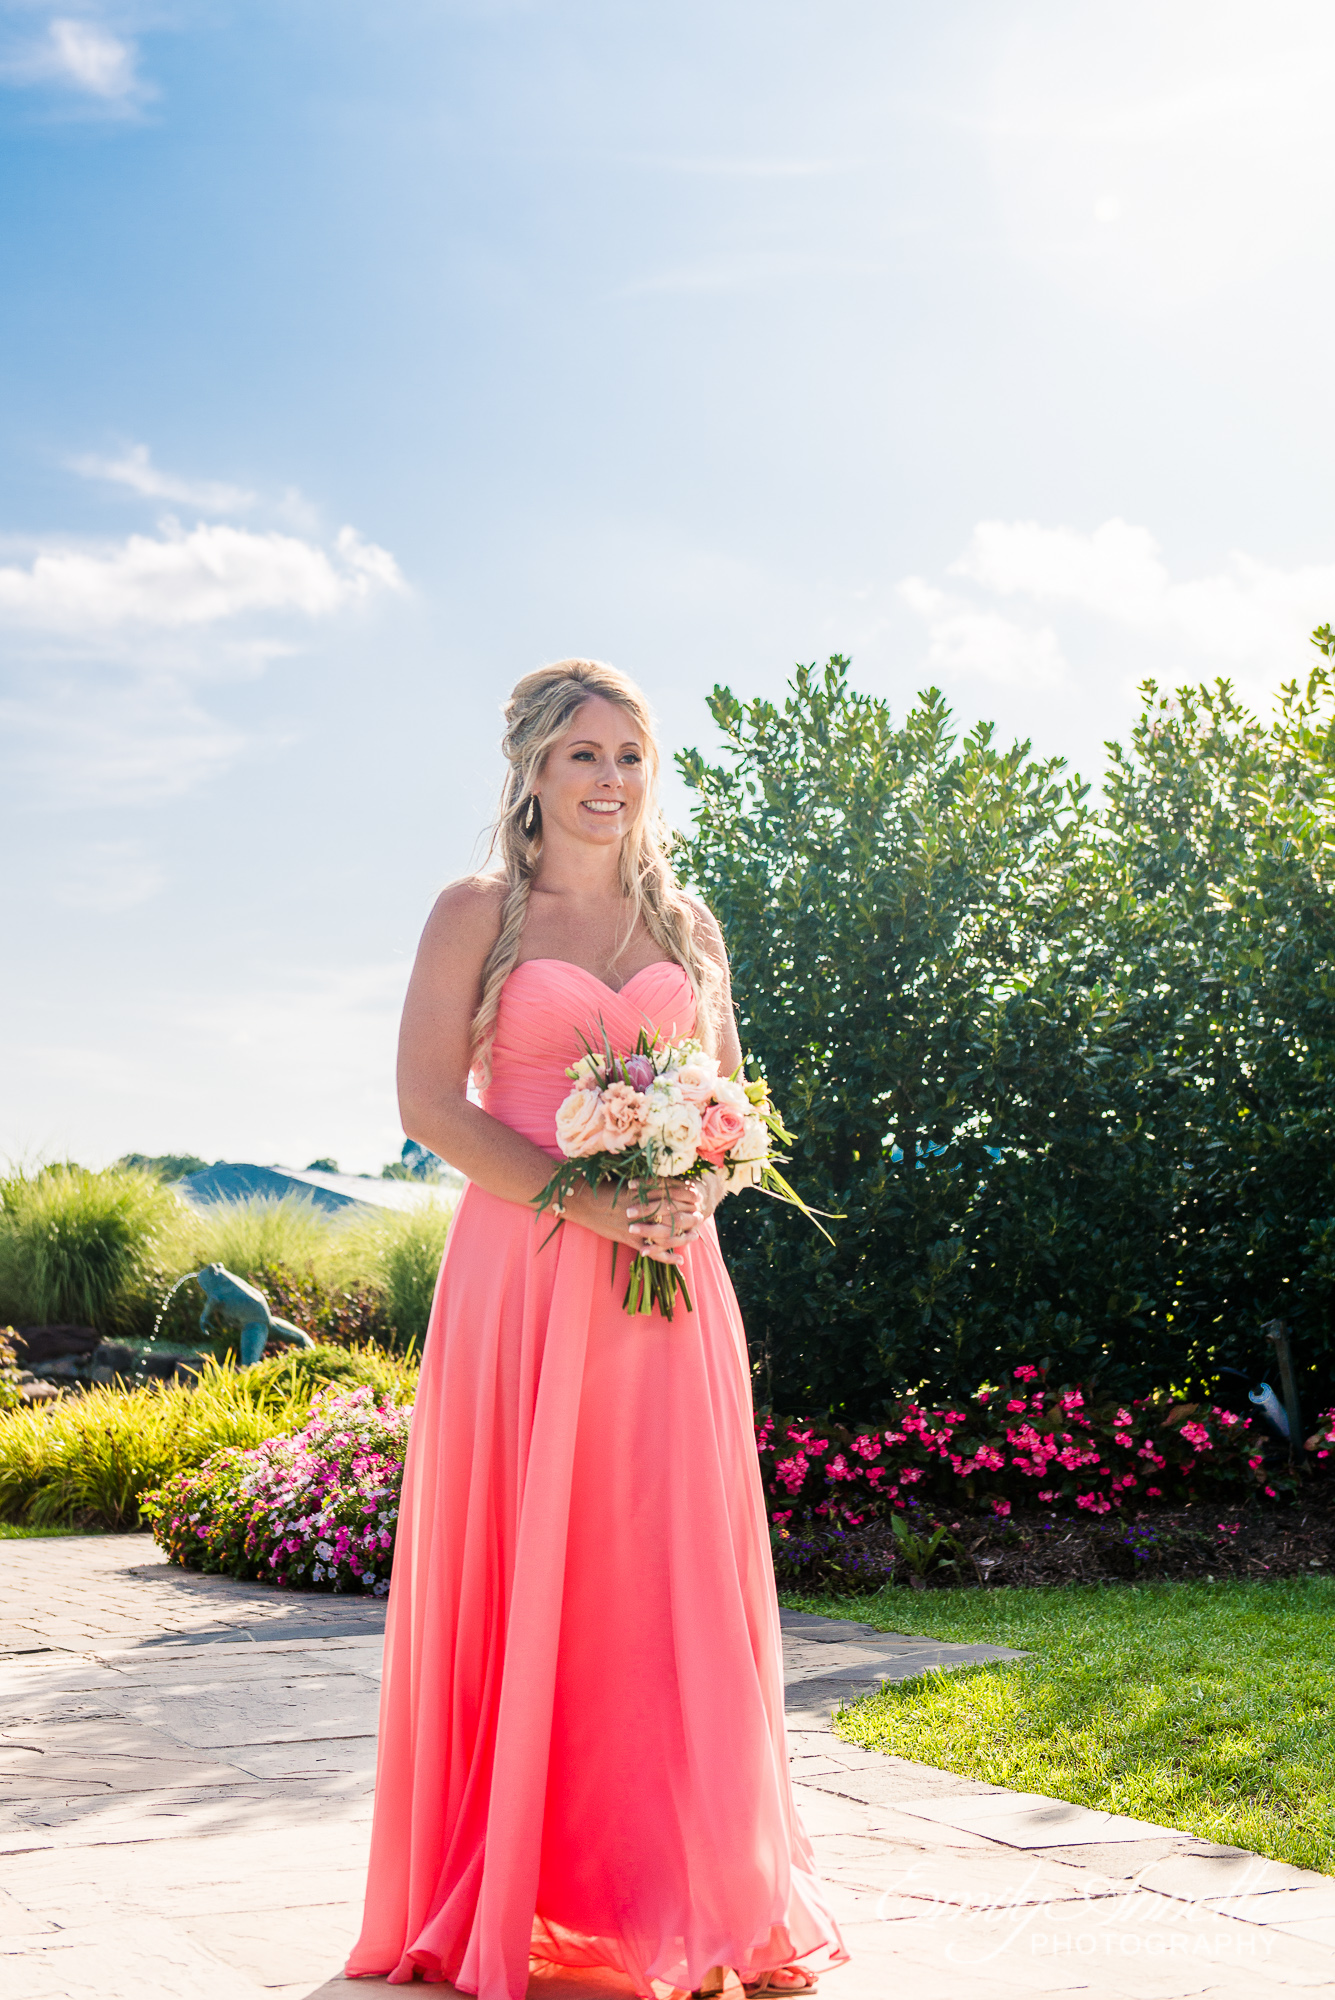 A bridesmaid begins walking down the aisle holding a tropical flower bouquet and wearing a coral colored maxi dress during a wedding at Herrington on the Bay in North Beach, Maryland